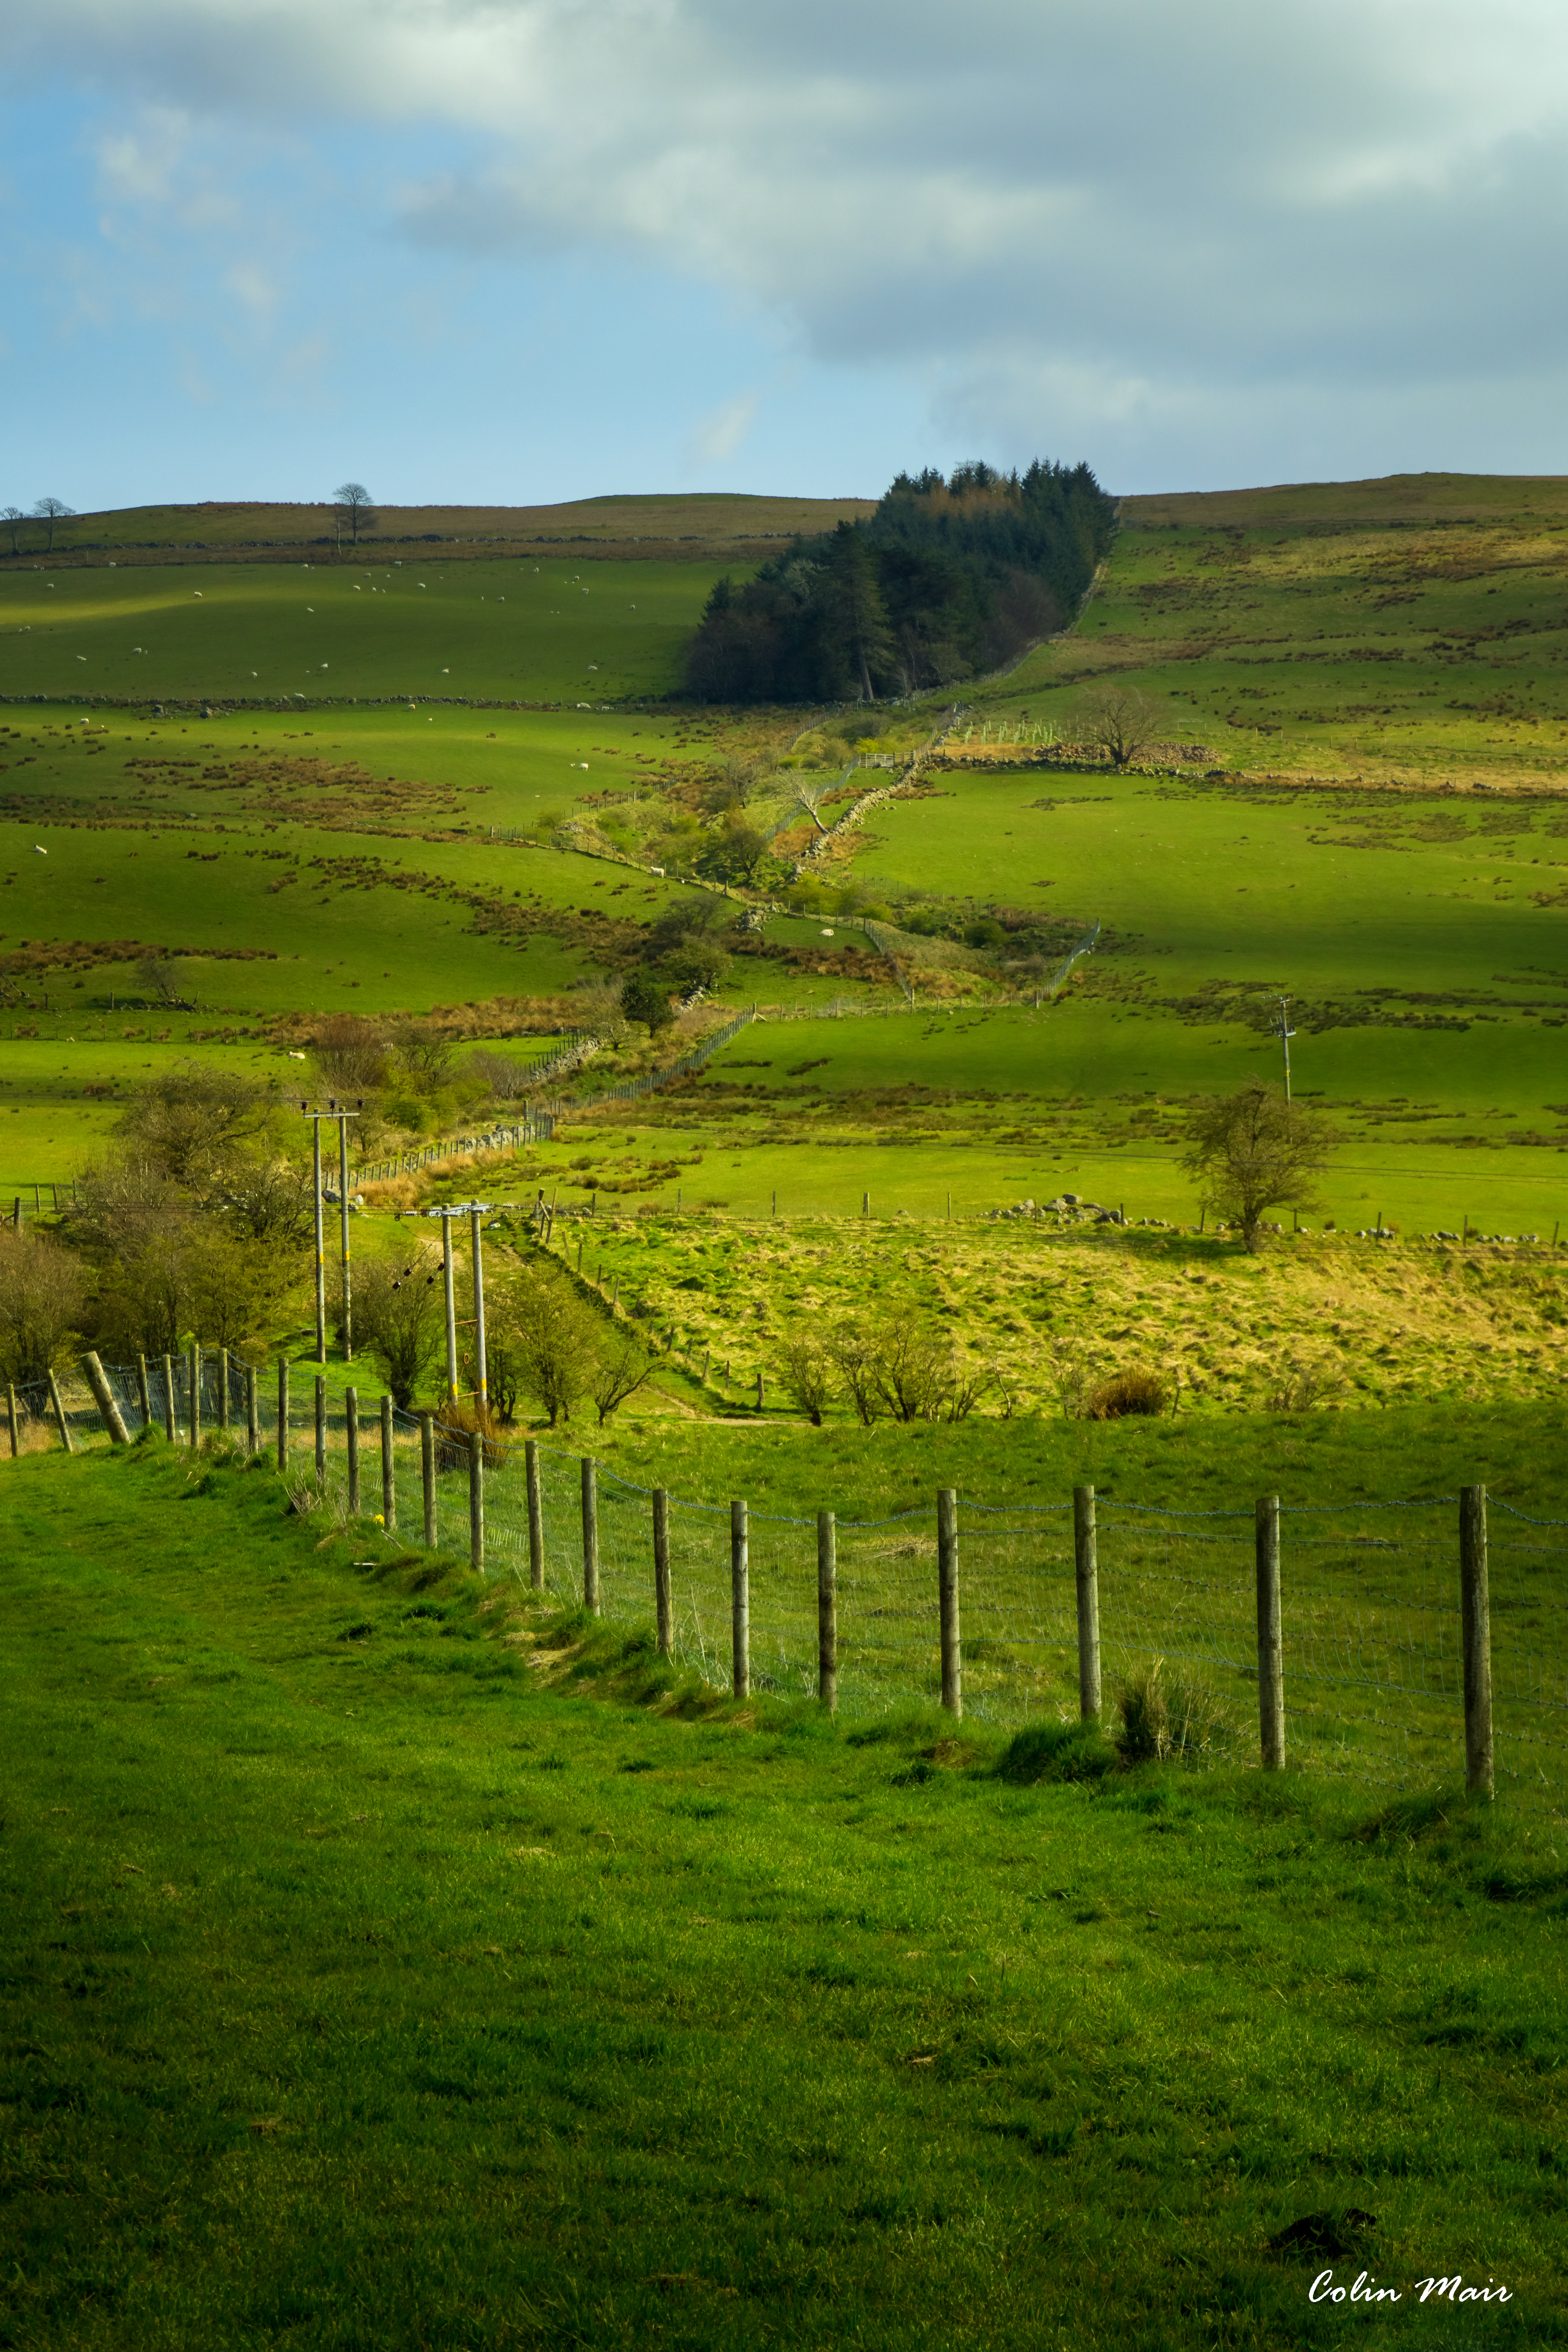 To Infinity and beyond - HFF - (Tamron 28-200mm, f8) - 2019-04-13th, New Cumnock, Scotland, UK